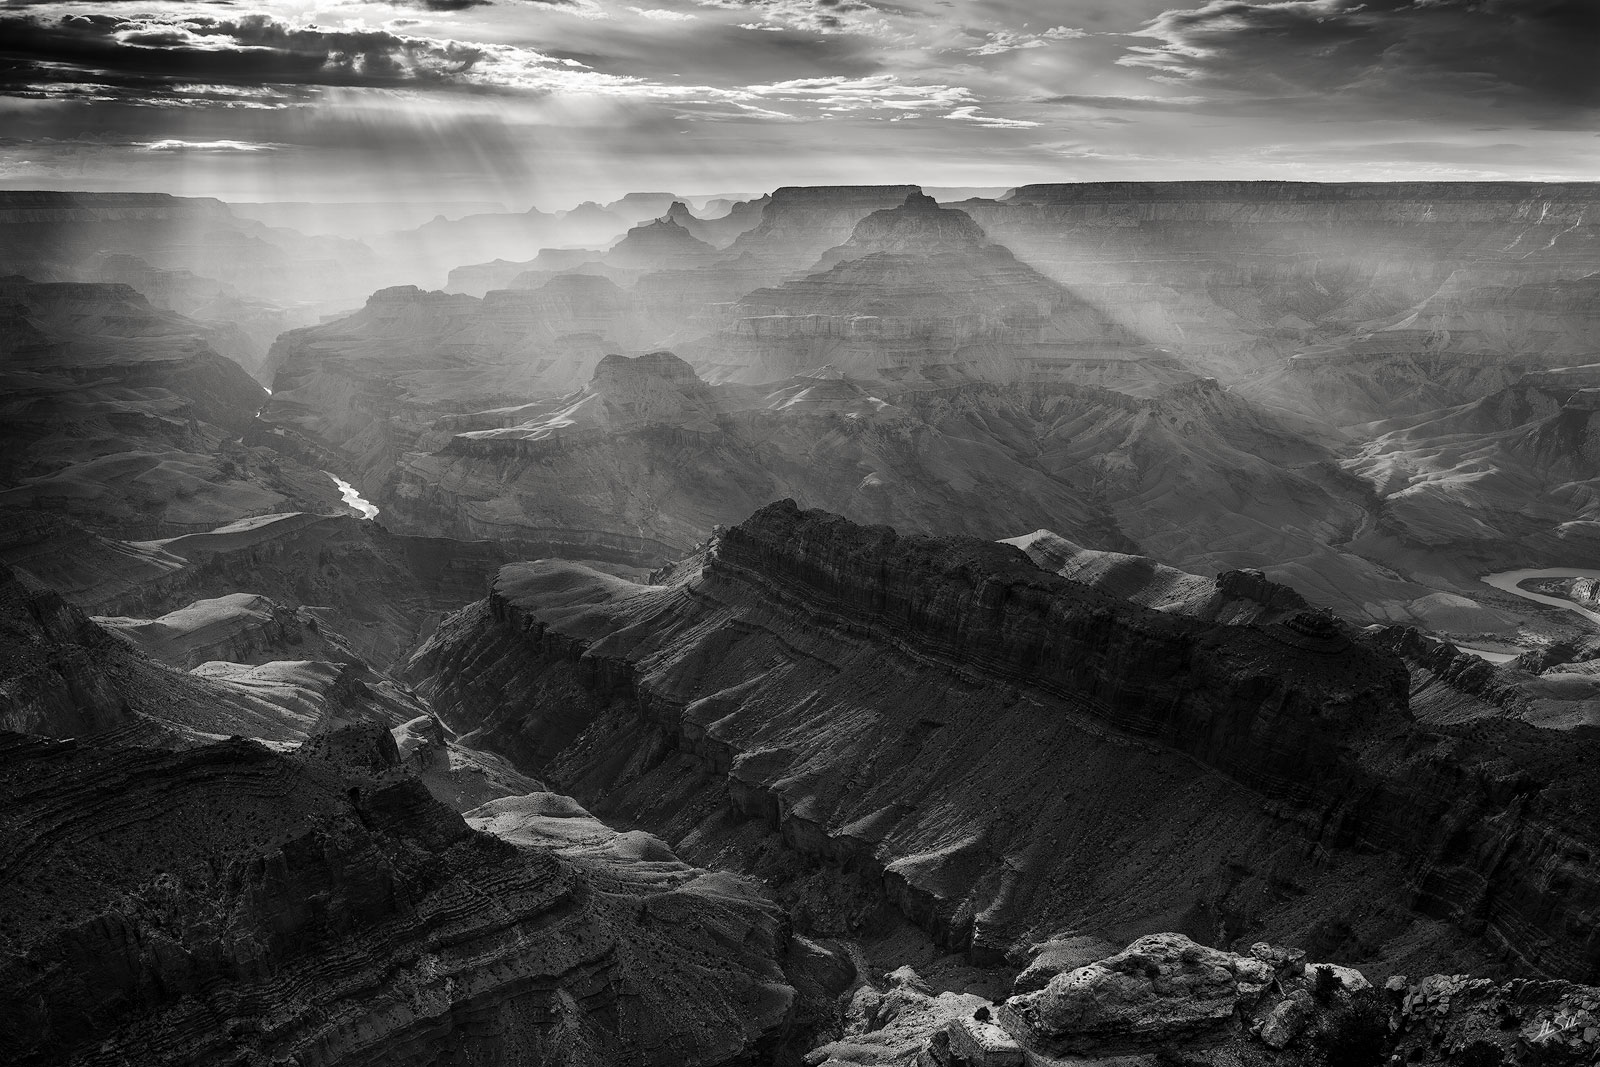 God beams stream through the Grand Canyon. From Lipan Point on the South Rim. Photo © Adam Schallau, All Rights Reserved.